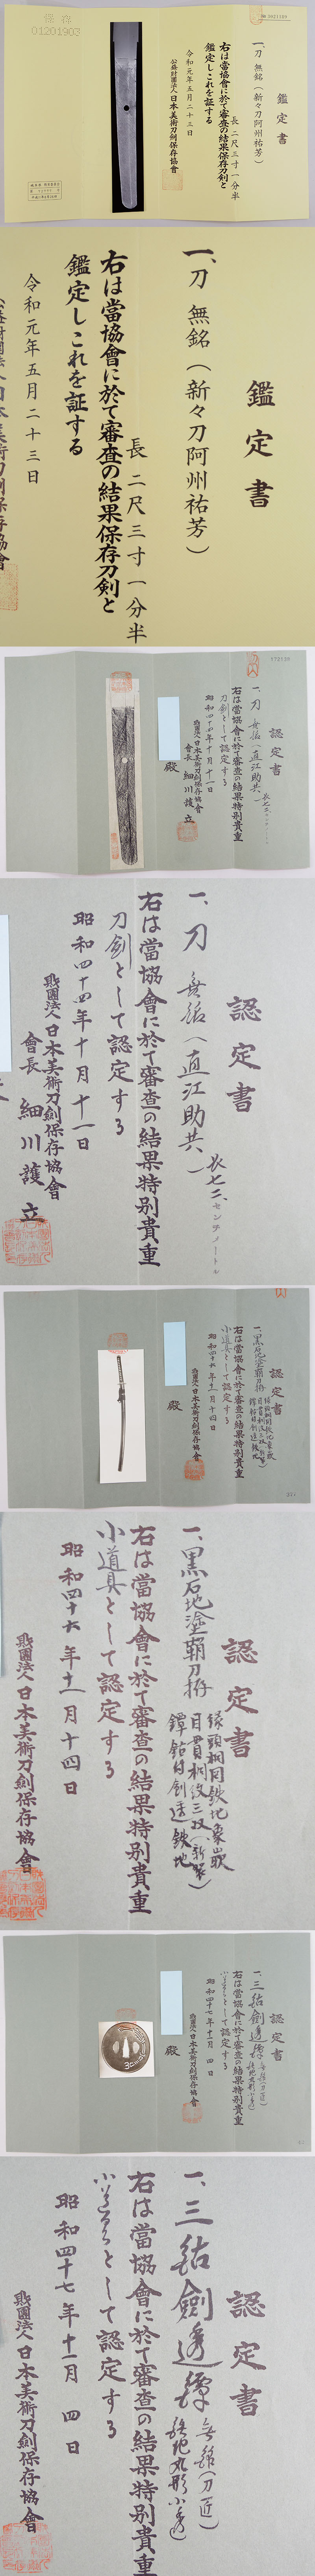 無銘(阿州祐芳) Picture of Certificate